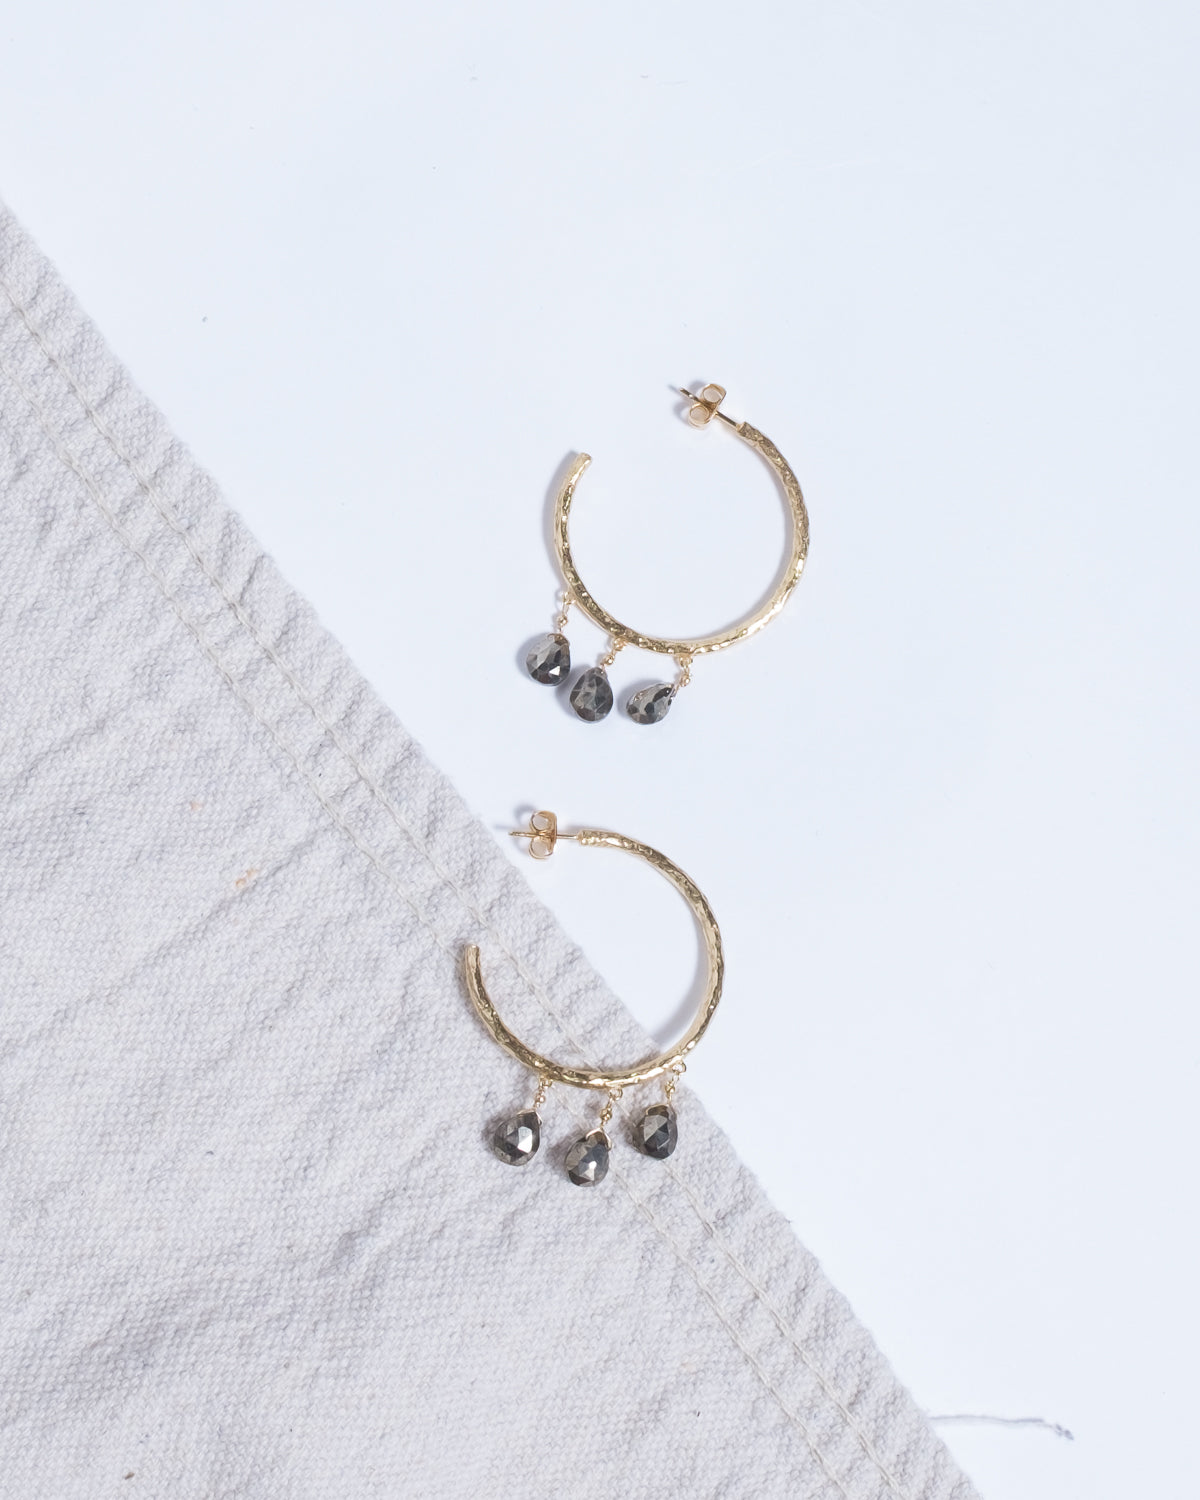 Clementines Seattle Womens Accessory Jewelry Bluma Project Camila Hoops Silver Gold Rhodium